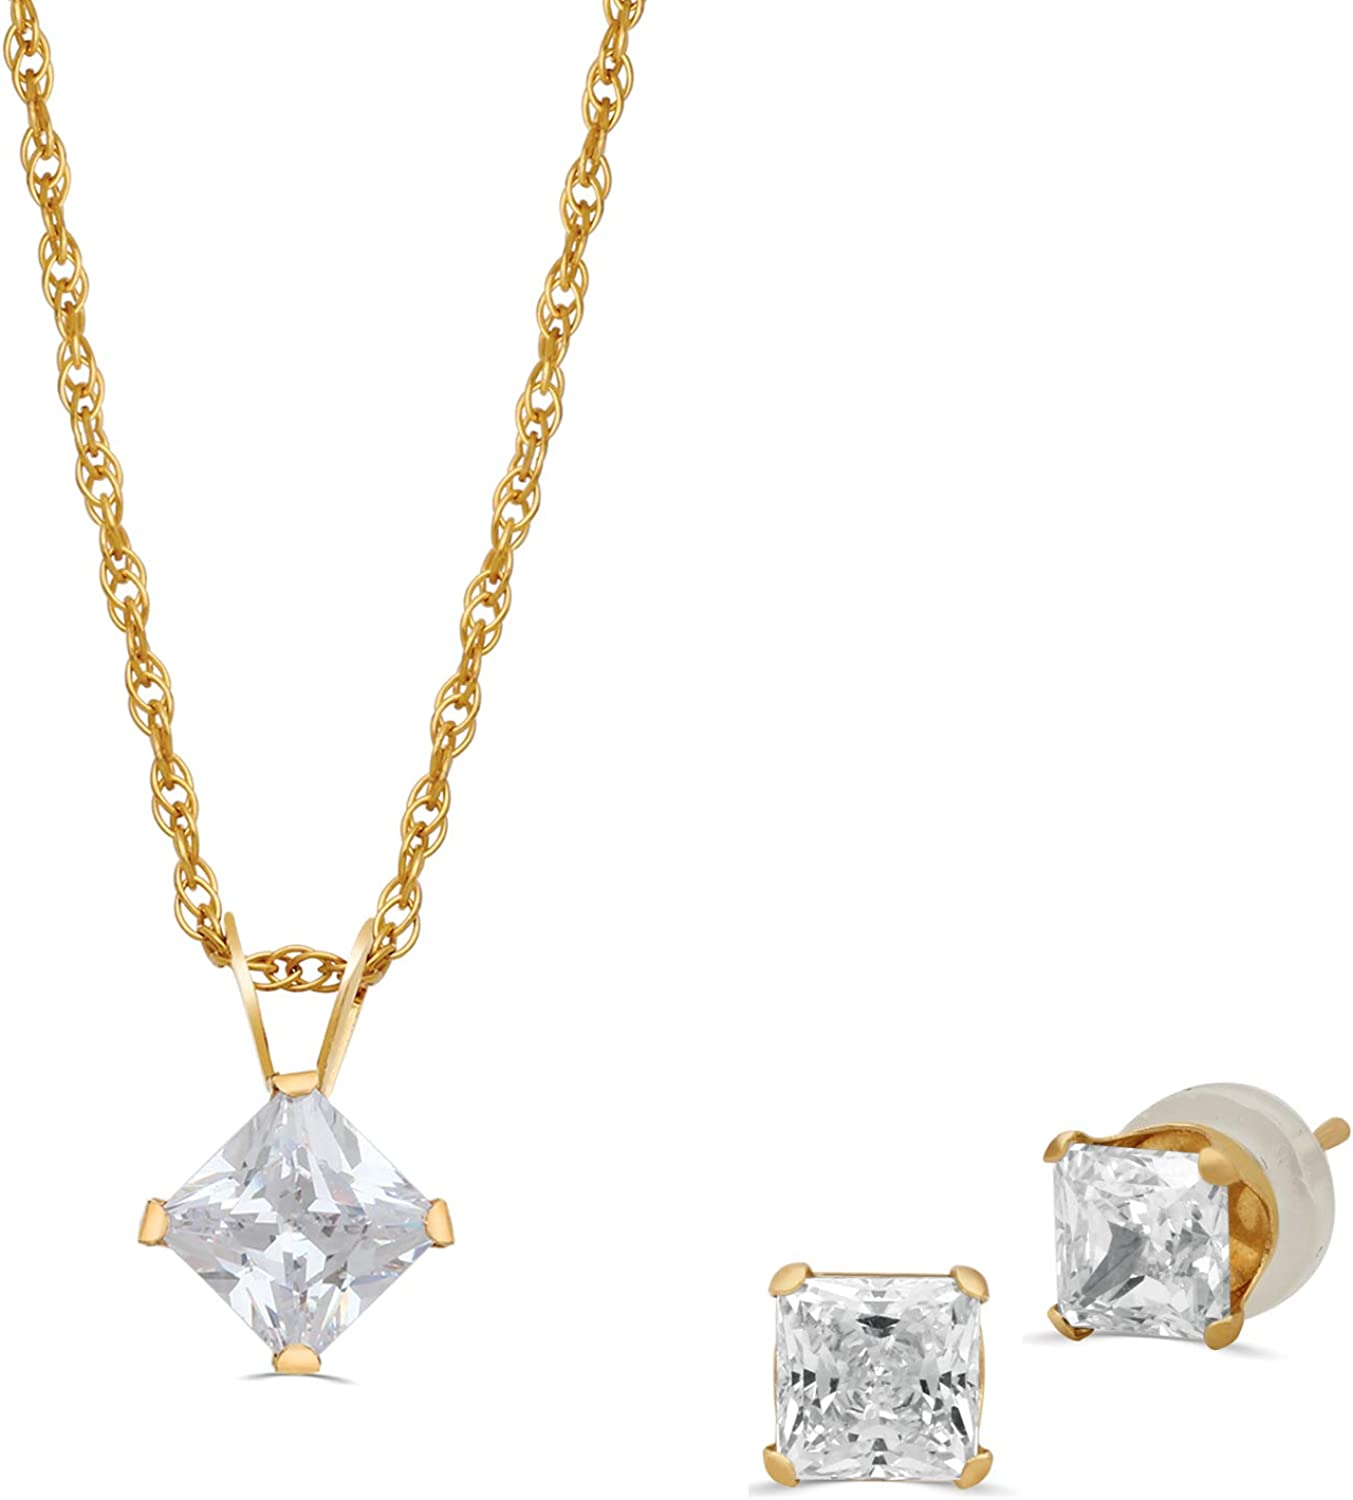 Jewelili 10K Yellow Gold 5 MM and 4 MM White Round Cubic Zirconia Stud Earring and Pendant Necklace Jewelry Set